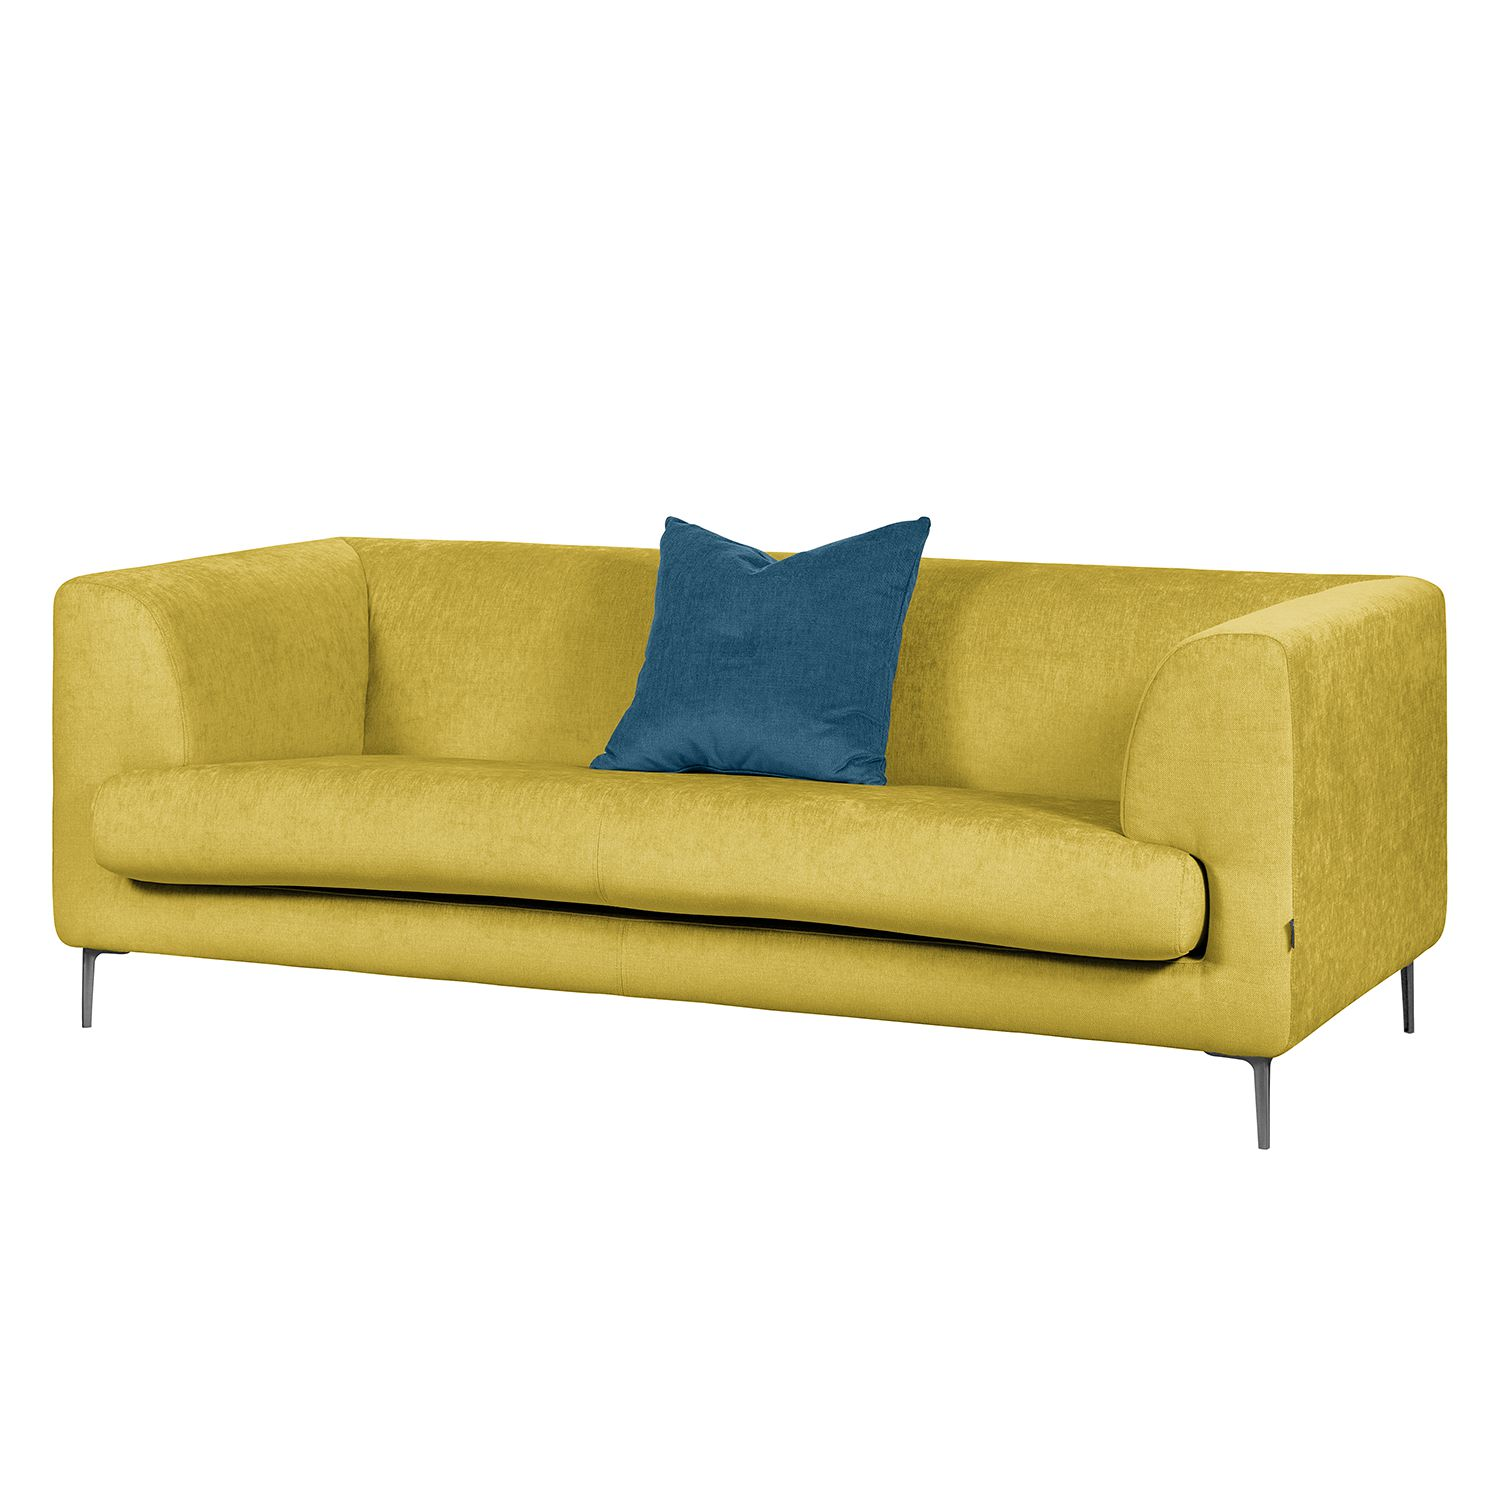 Sofa Sombret (2,5-Sitzer) - Webstoff - Lemon, Says Who